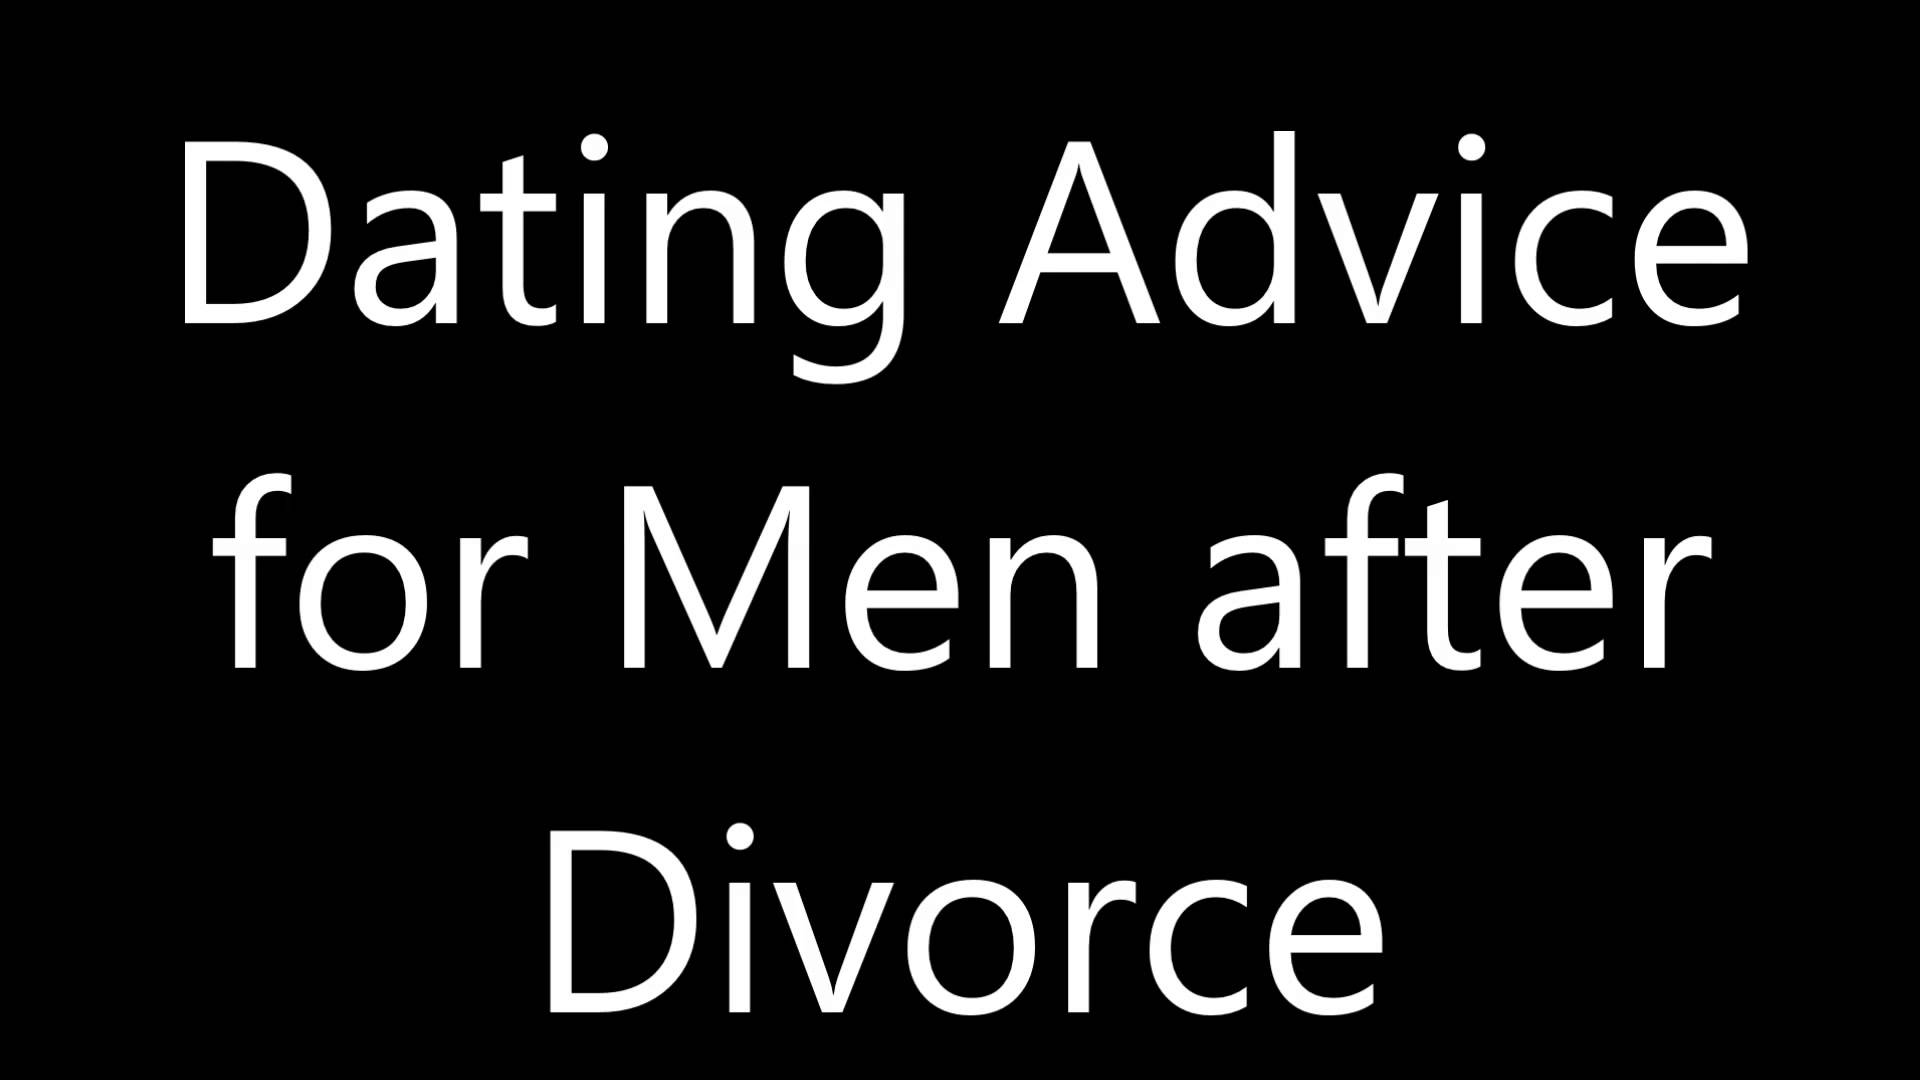 Dating Advice - Page 2 - AskMen